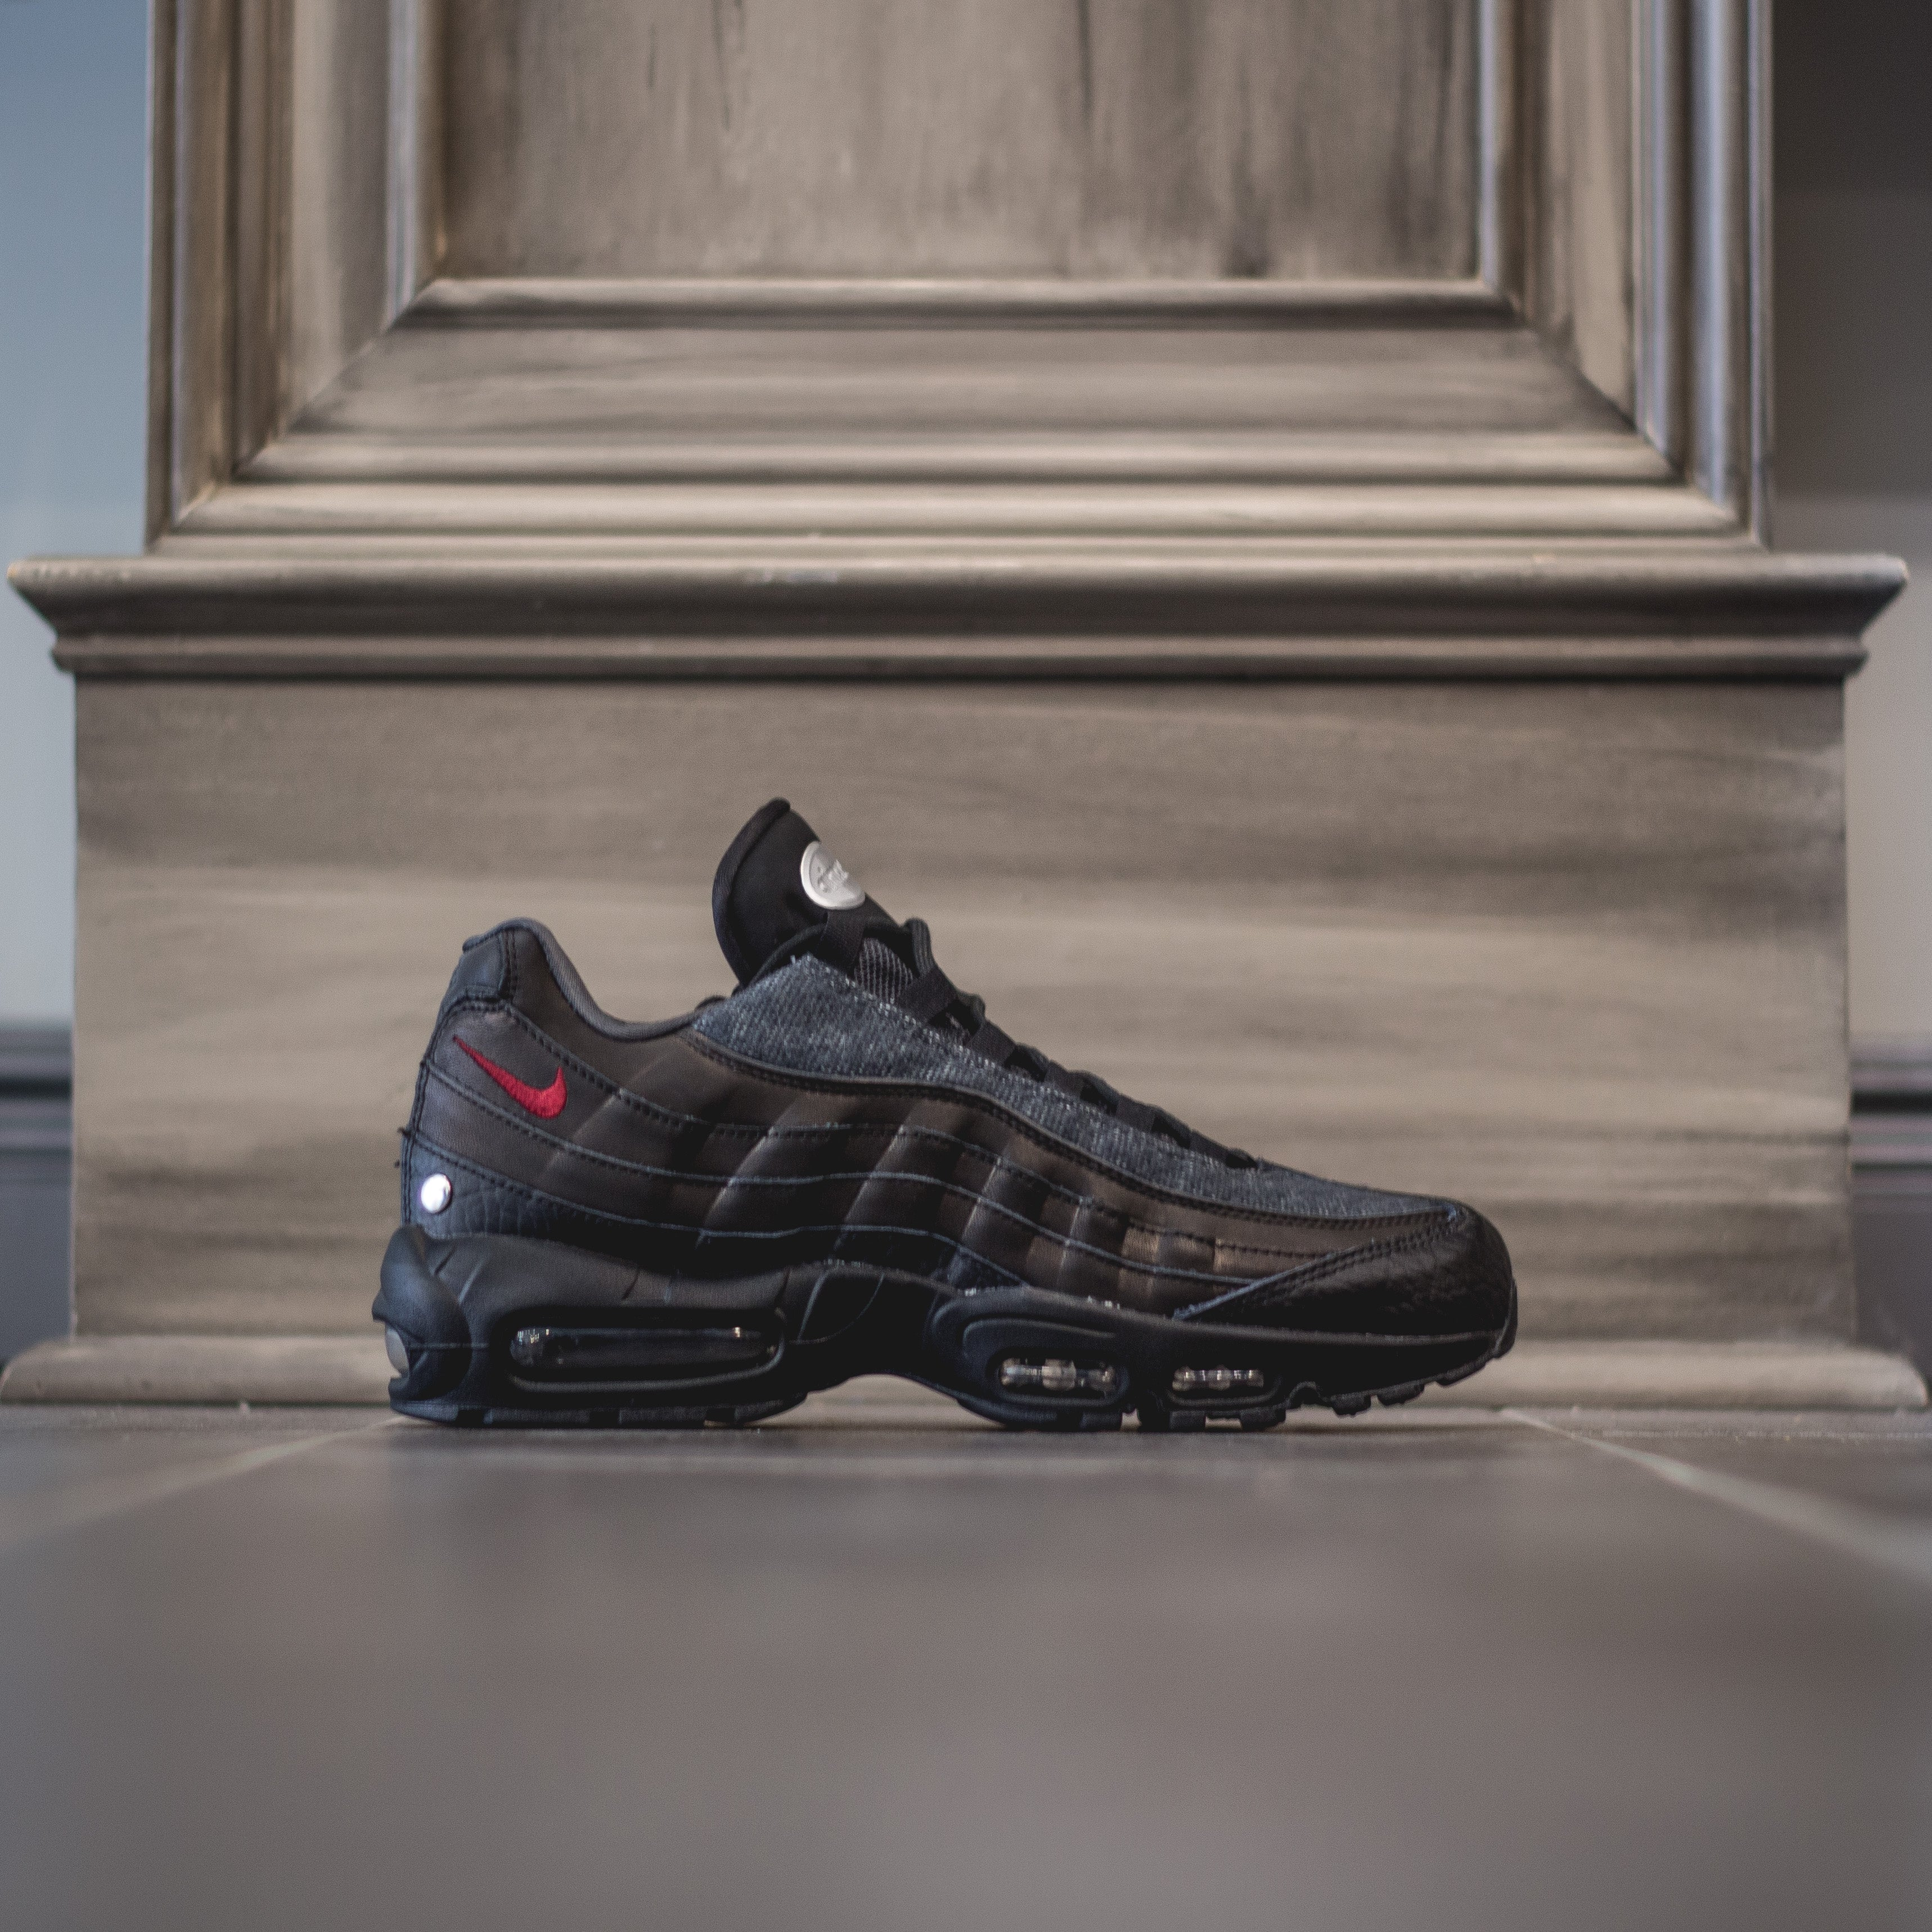 official photos 9aaf5 927dc NIKE Air MAx 95 NRG - Black/Team Red-Anthracite